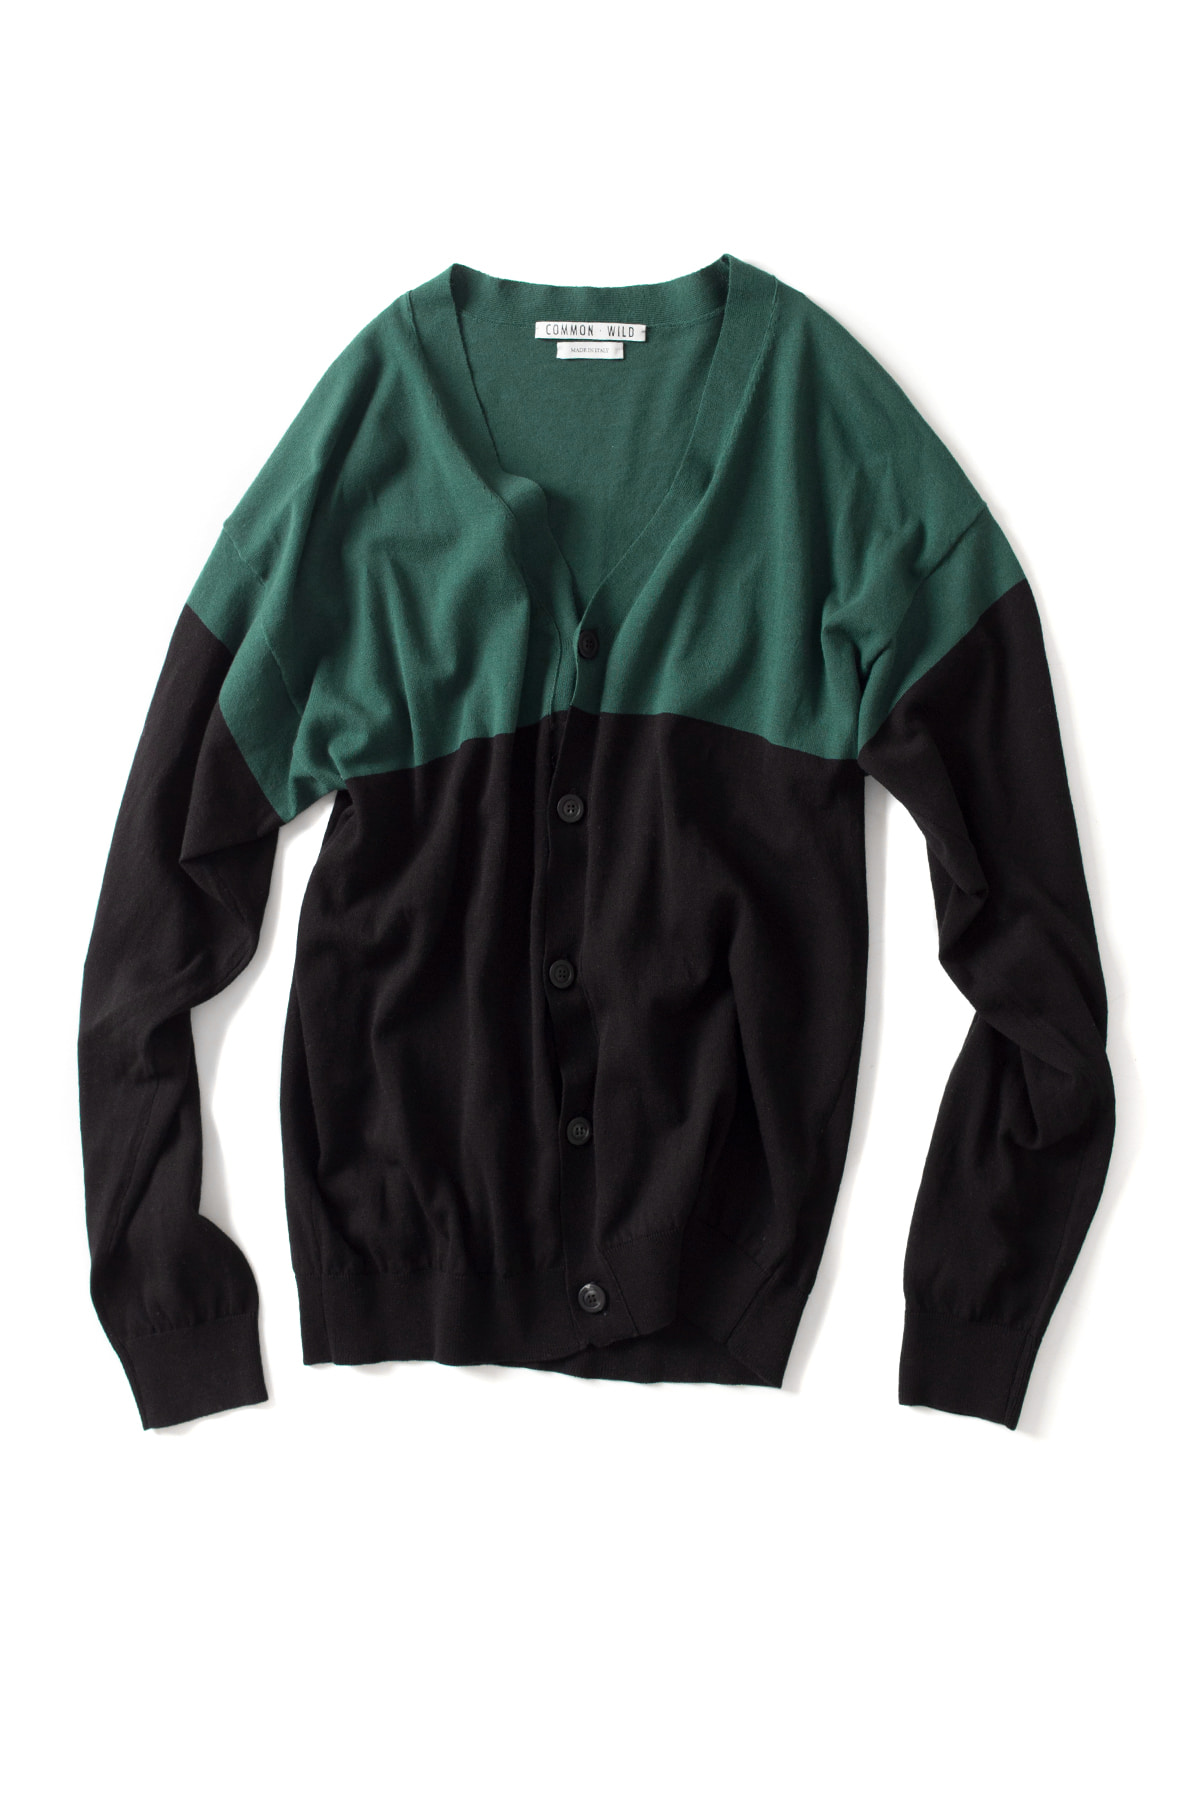 COMMON WILD :Knit Cardigan (Green)